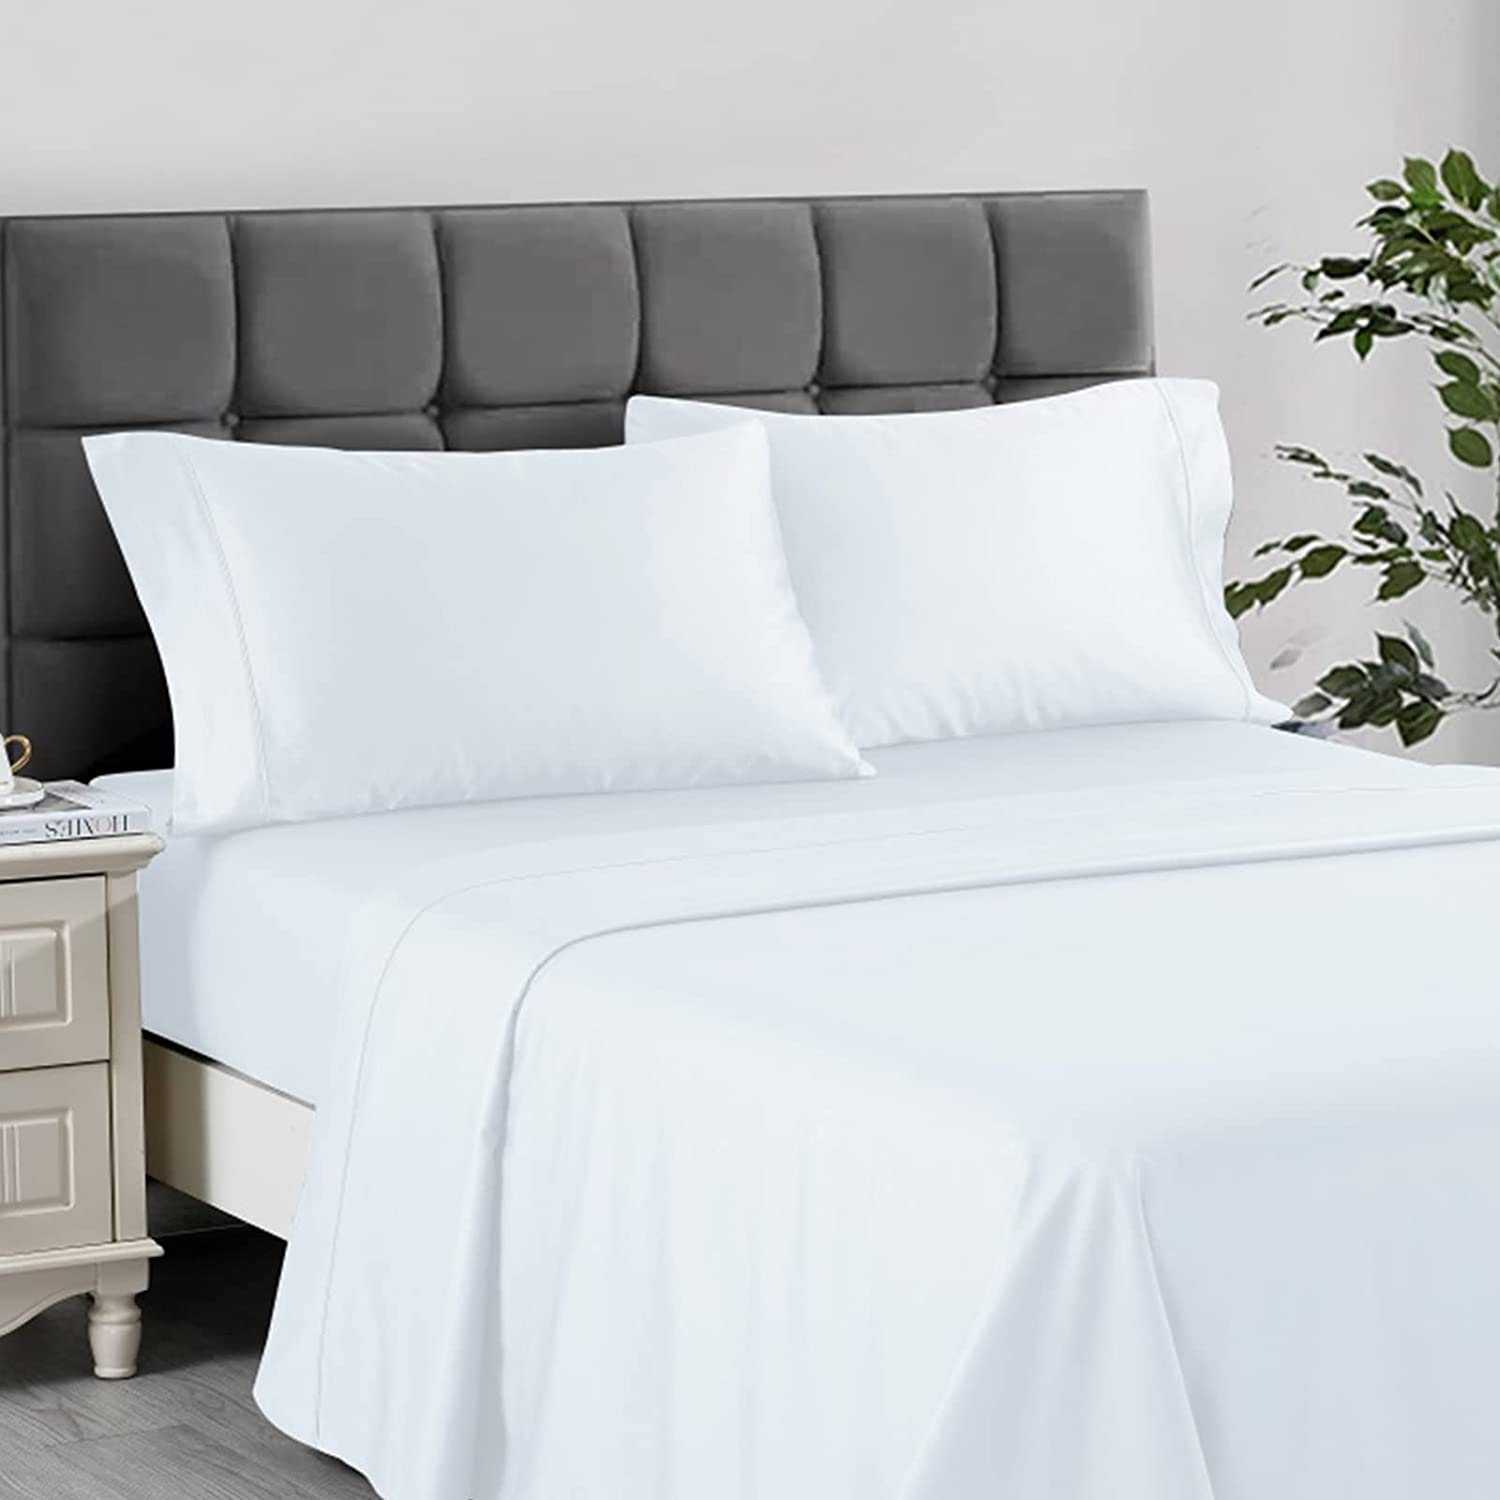 NORTH HOME Fitted Superior Sheet Set King San Francisco Mall Count Luxury P Thread Size 400